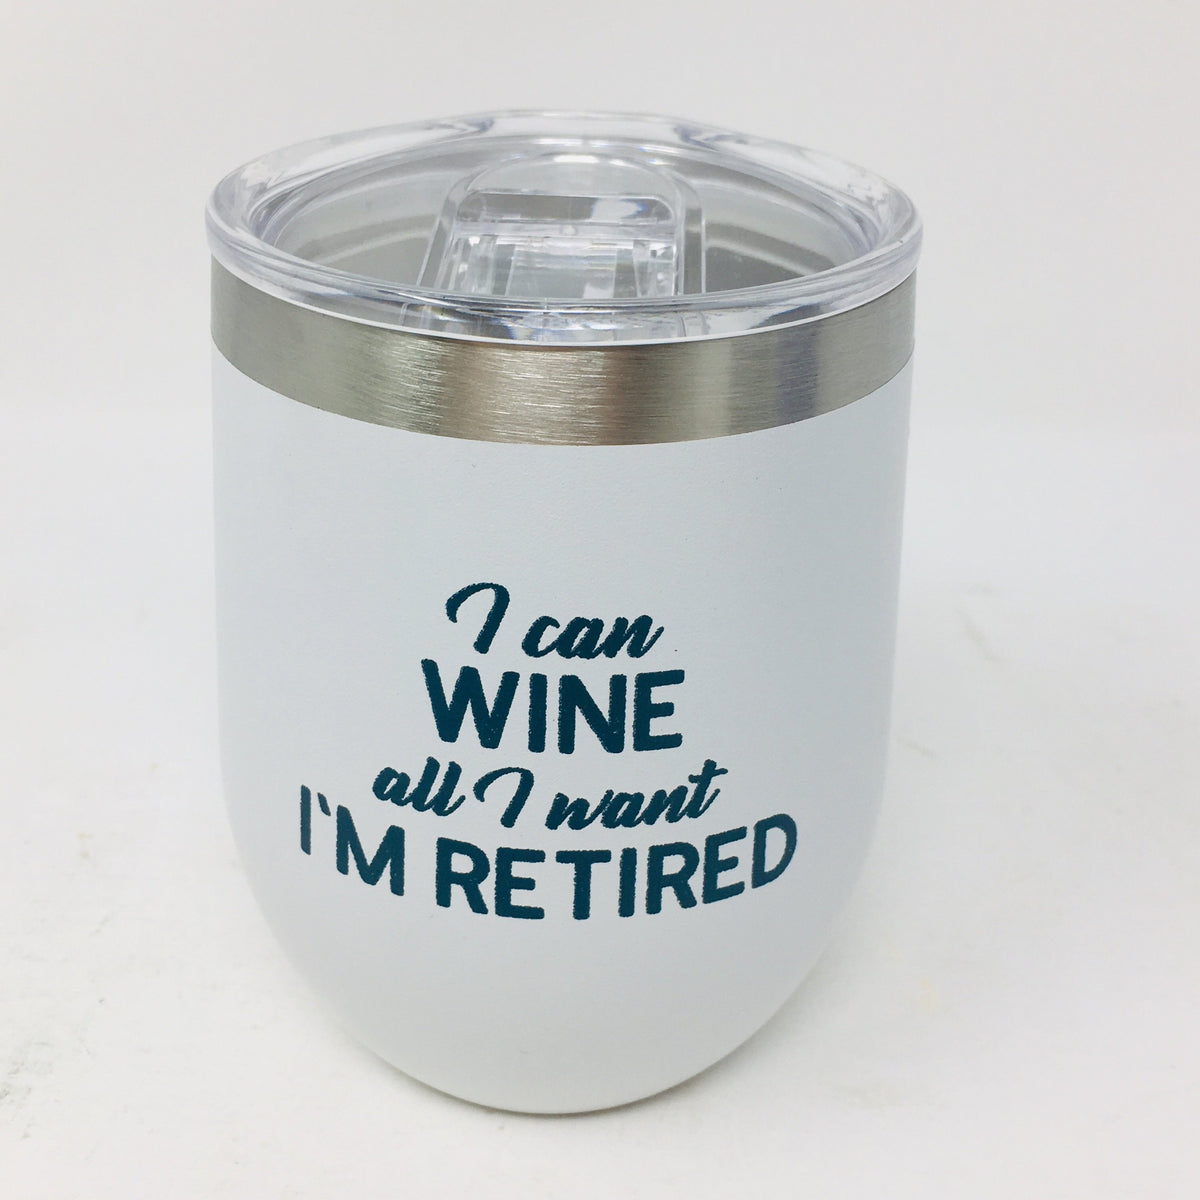 12 oz Stainless Stemless Wine Glass